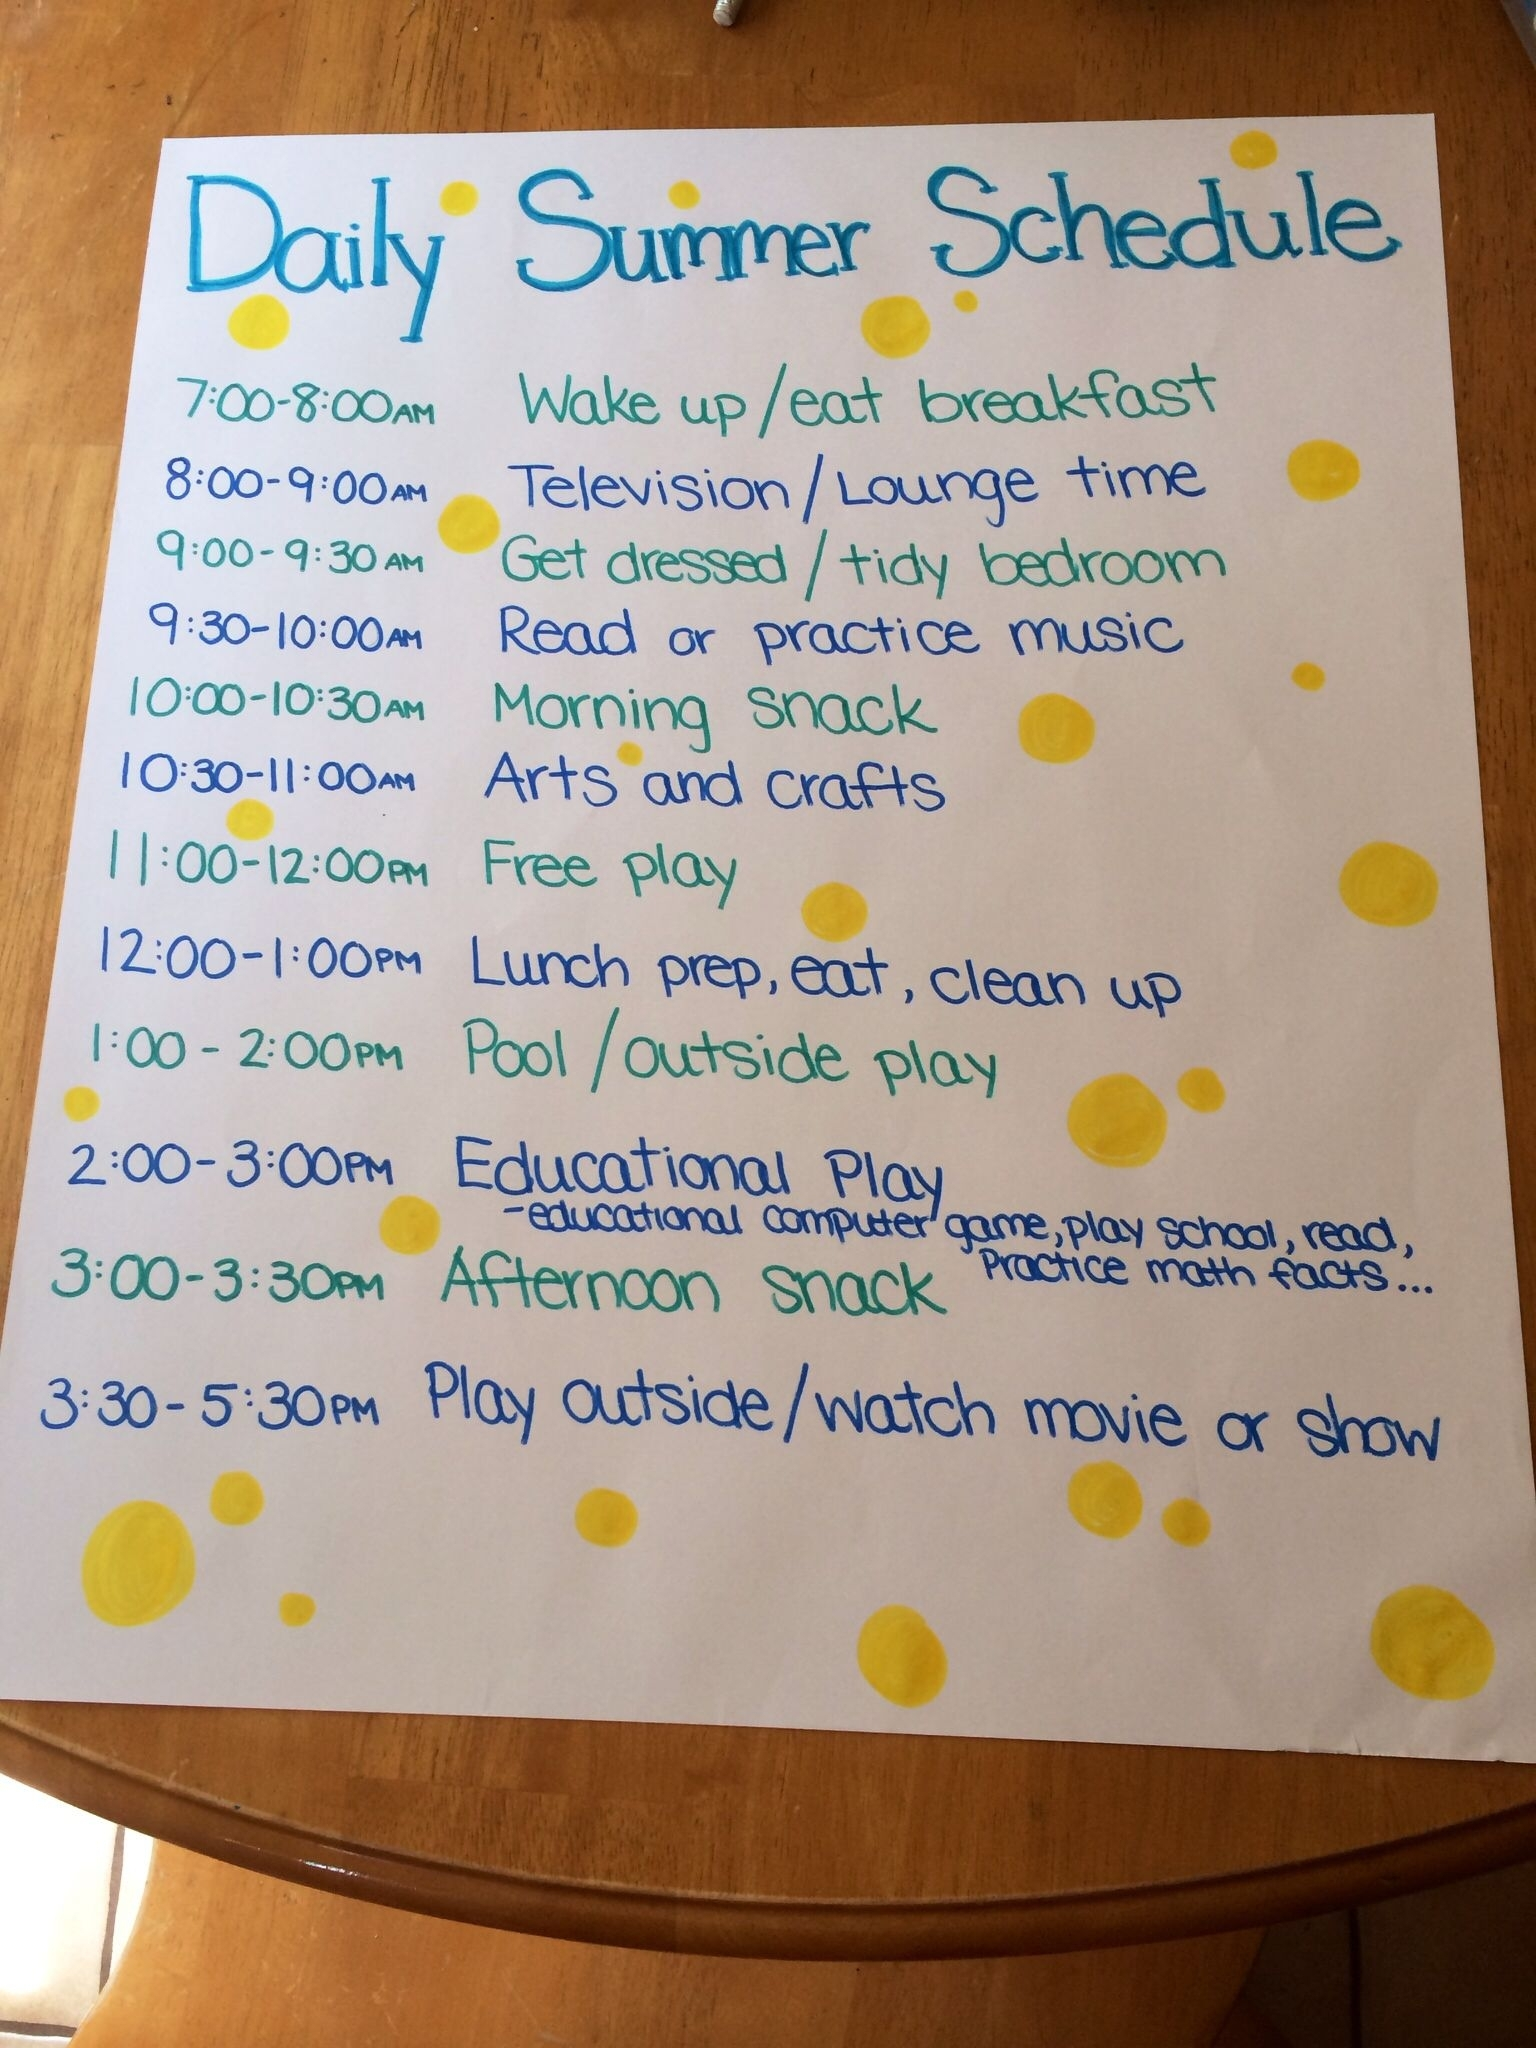 Stay Organized With A Daily Summer Schedule For Kids! | Kid within Daily Summer Activities For Preschoolers